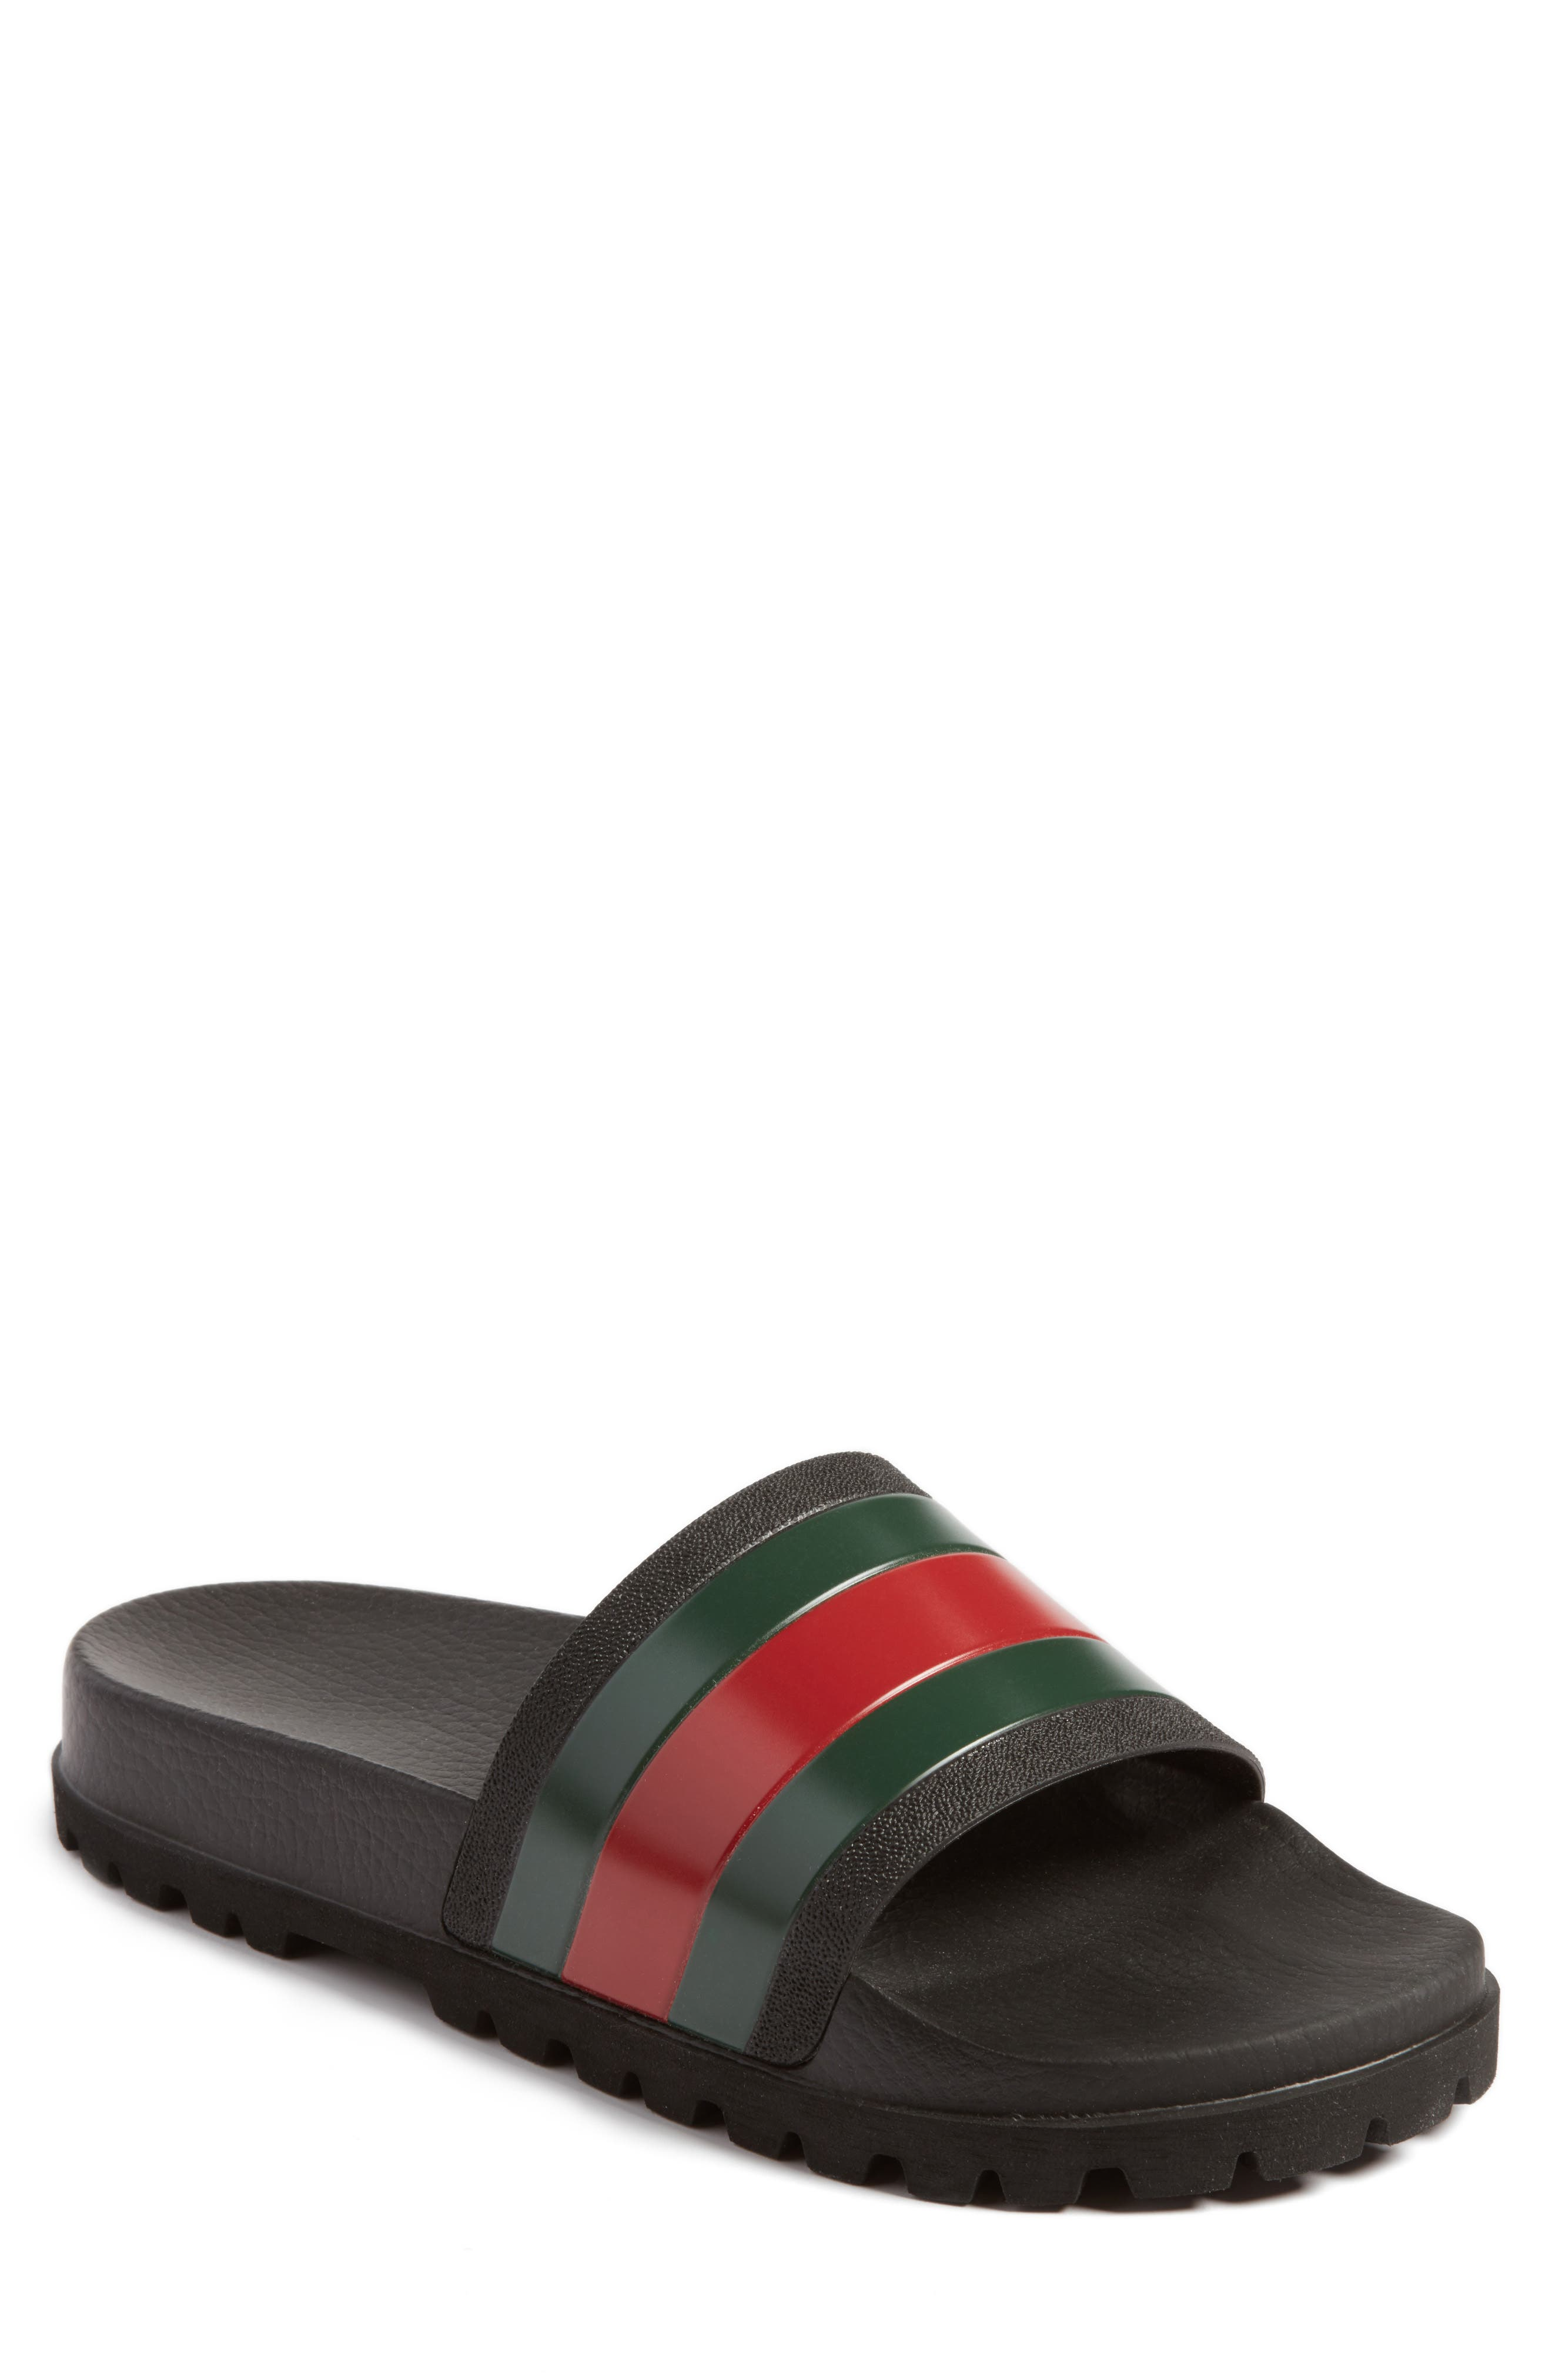 094494c76 Men s Gucci Sandals